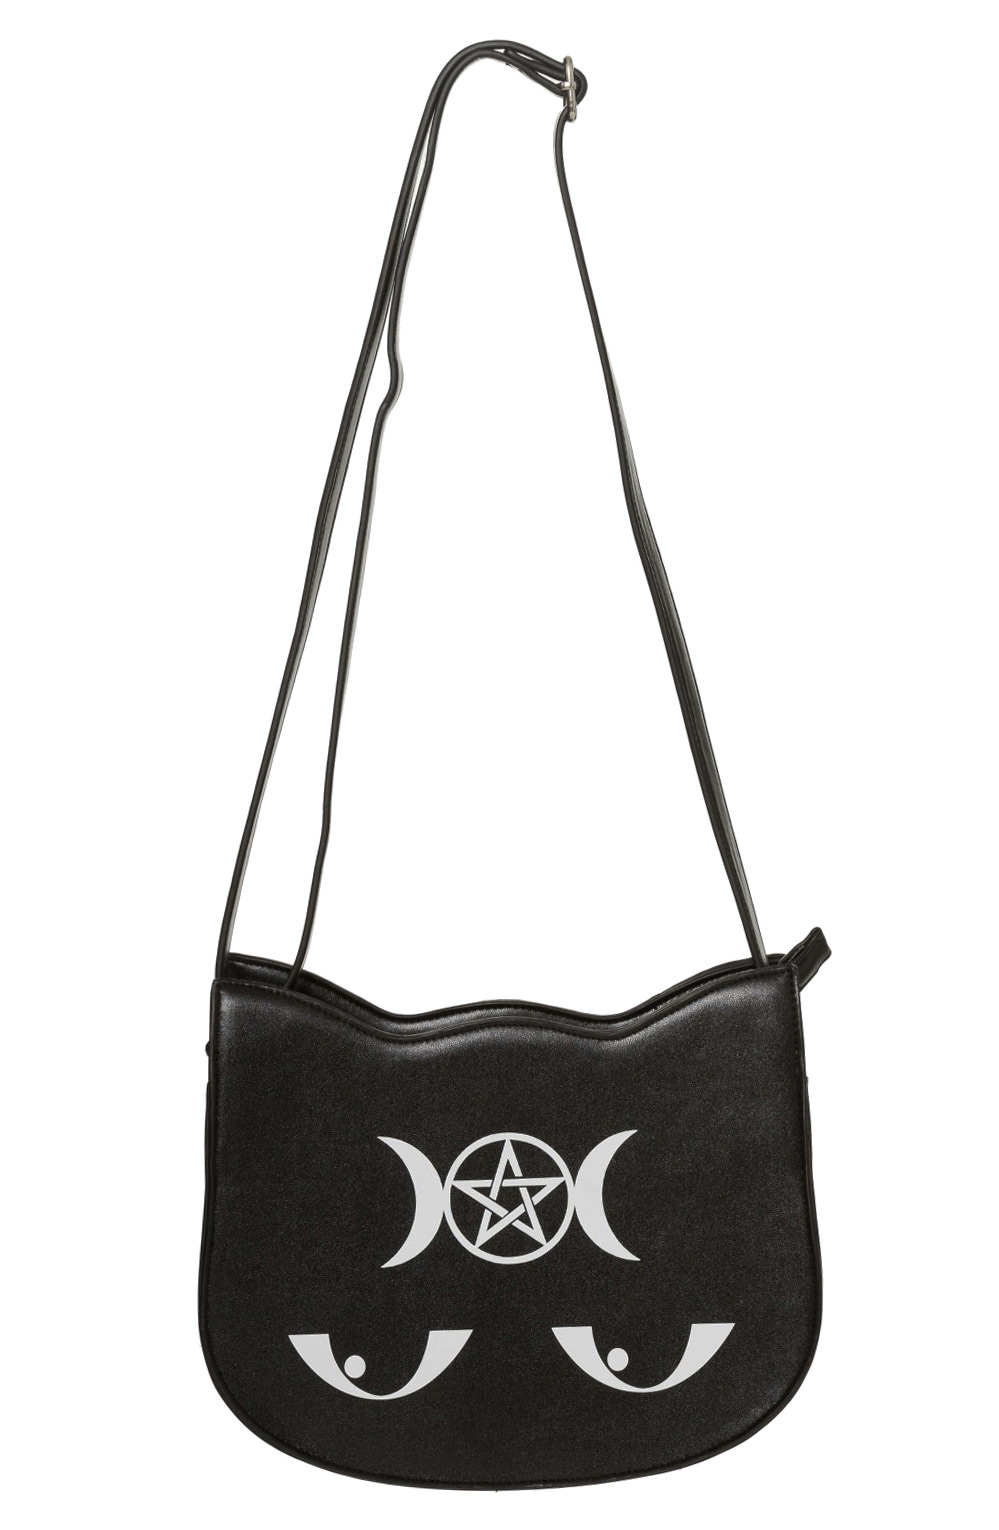 Sac à main noir chat magique, pentacle, occute, wicca, witch, banned